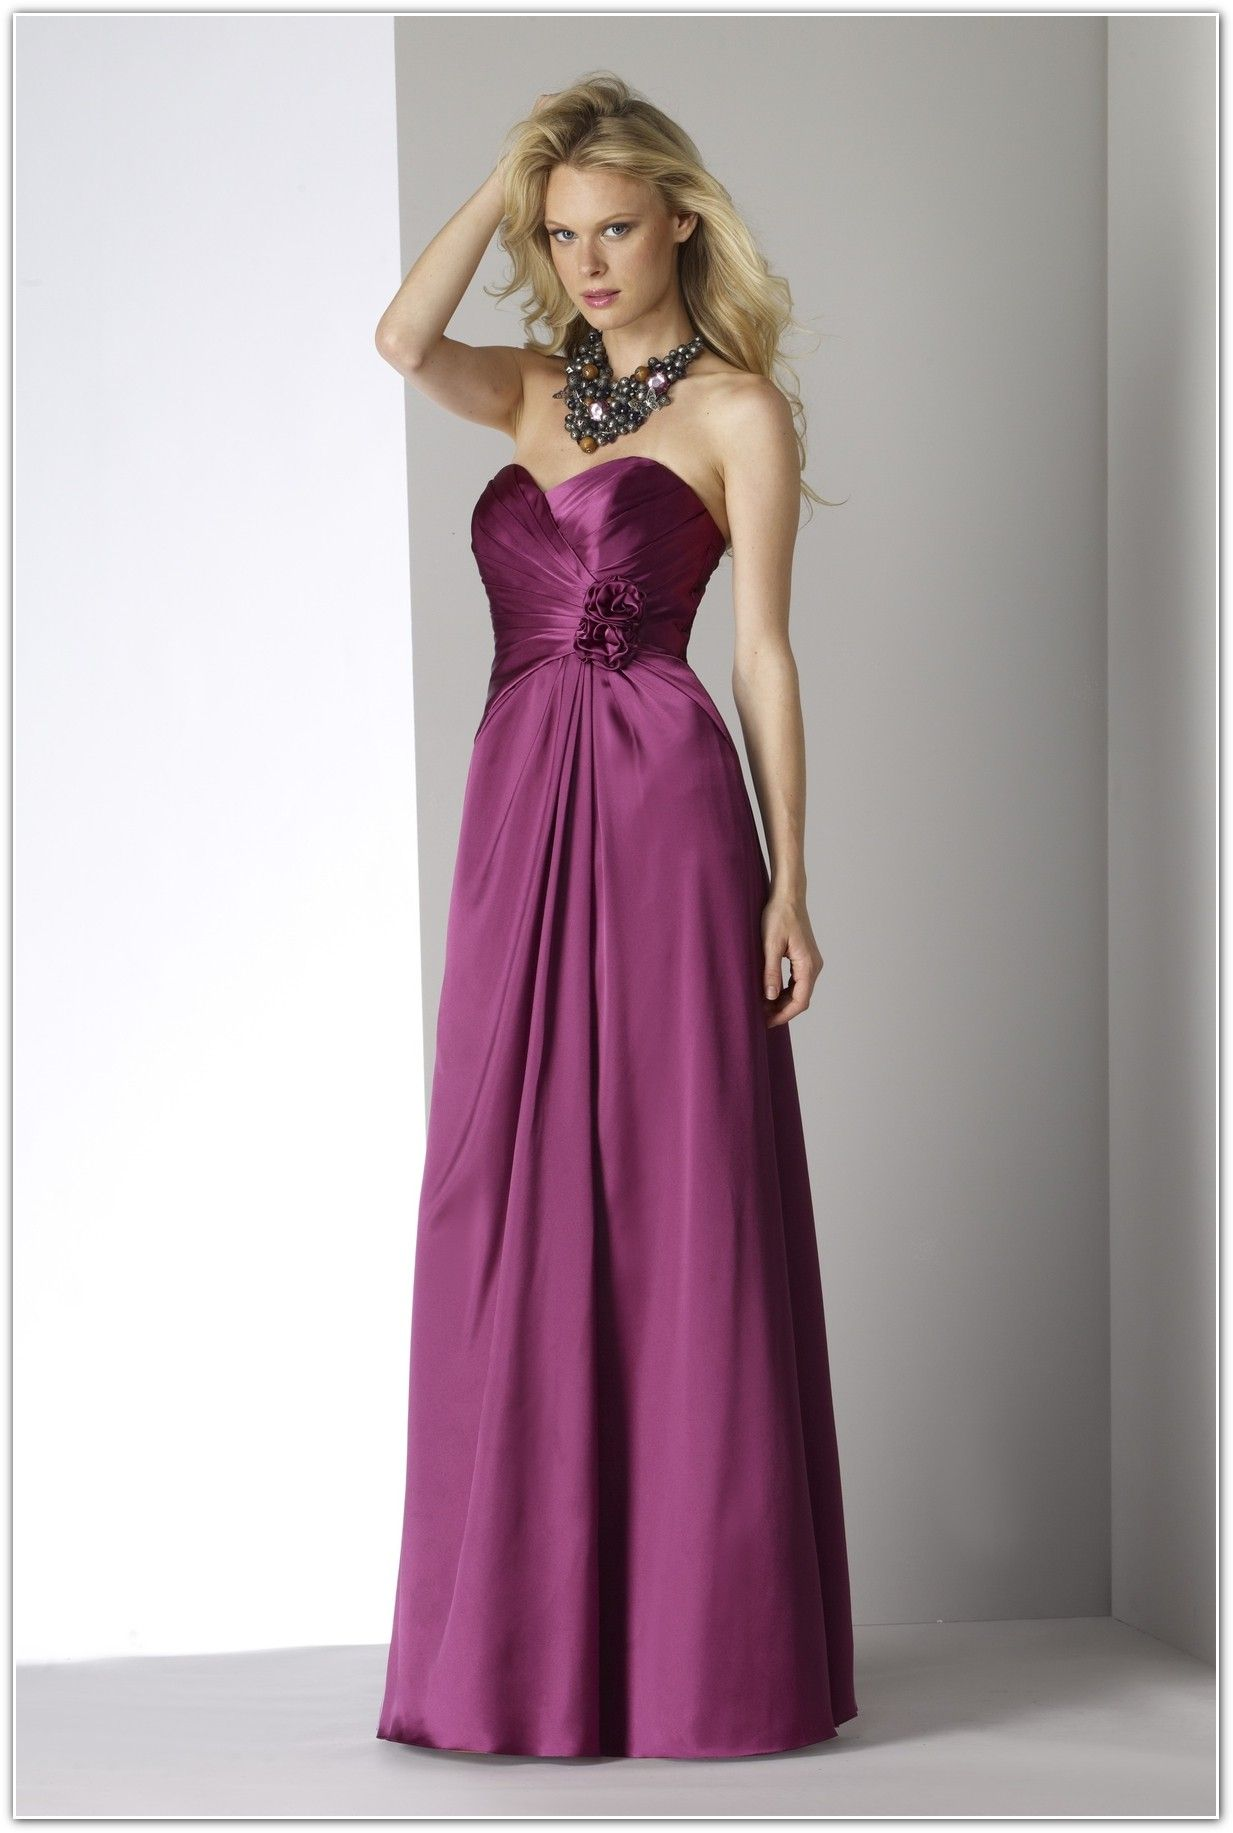 Elegant and Decent Inexpensive Bridesmaid Dresses   Fashion and ...